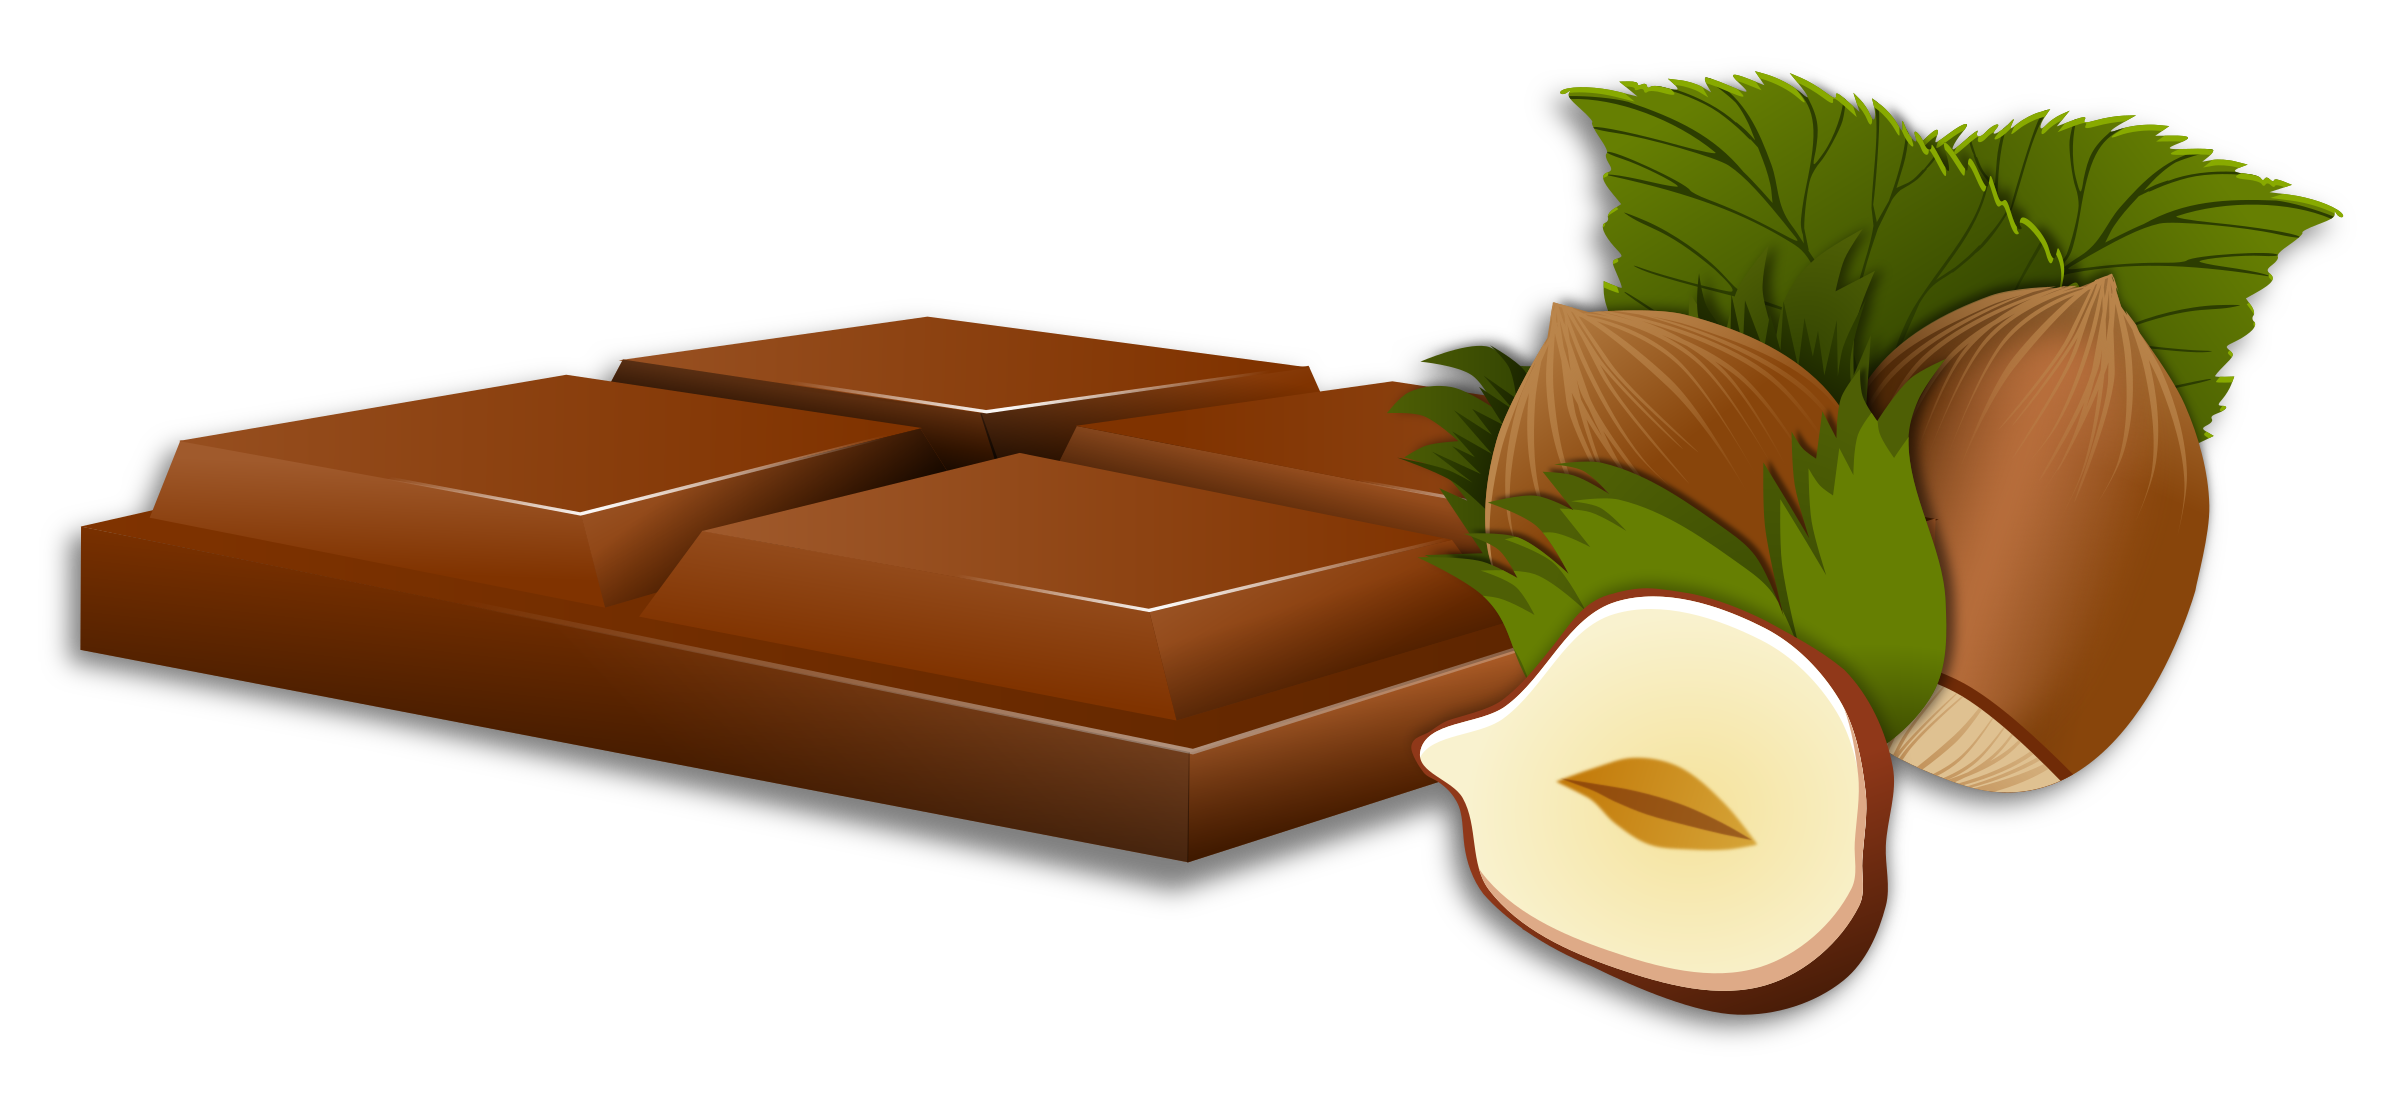 Choclate big image png. Hot clipart hot cocoa